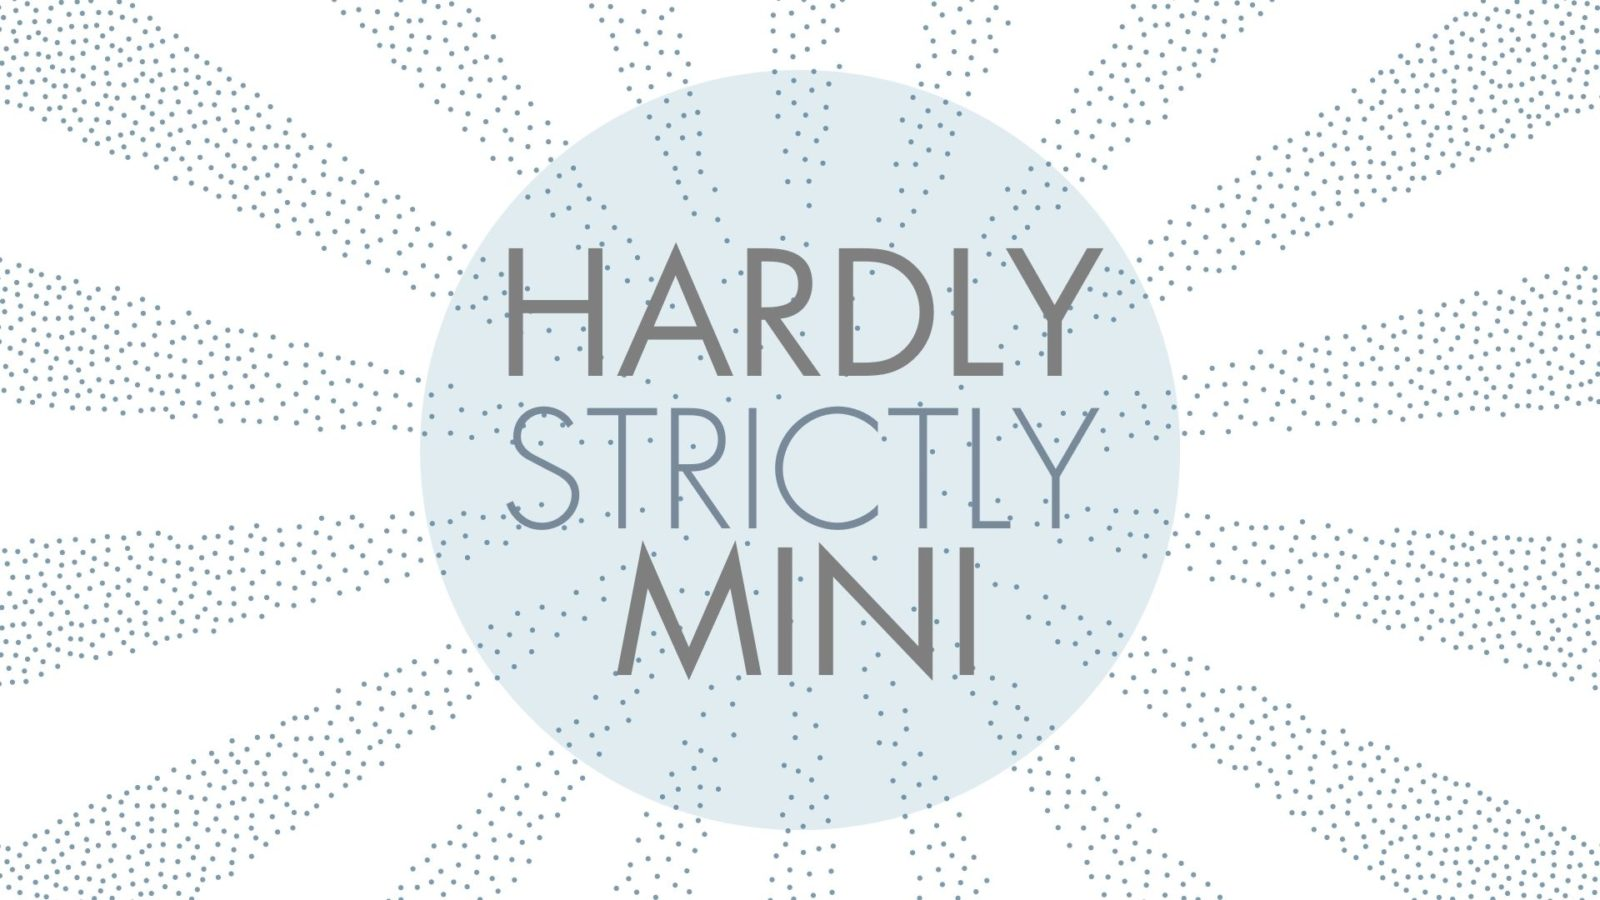 Hardly Strictly Mini: A Biennial Benefit Exhibition  -